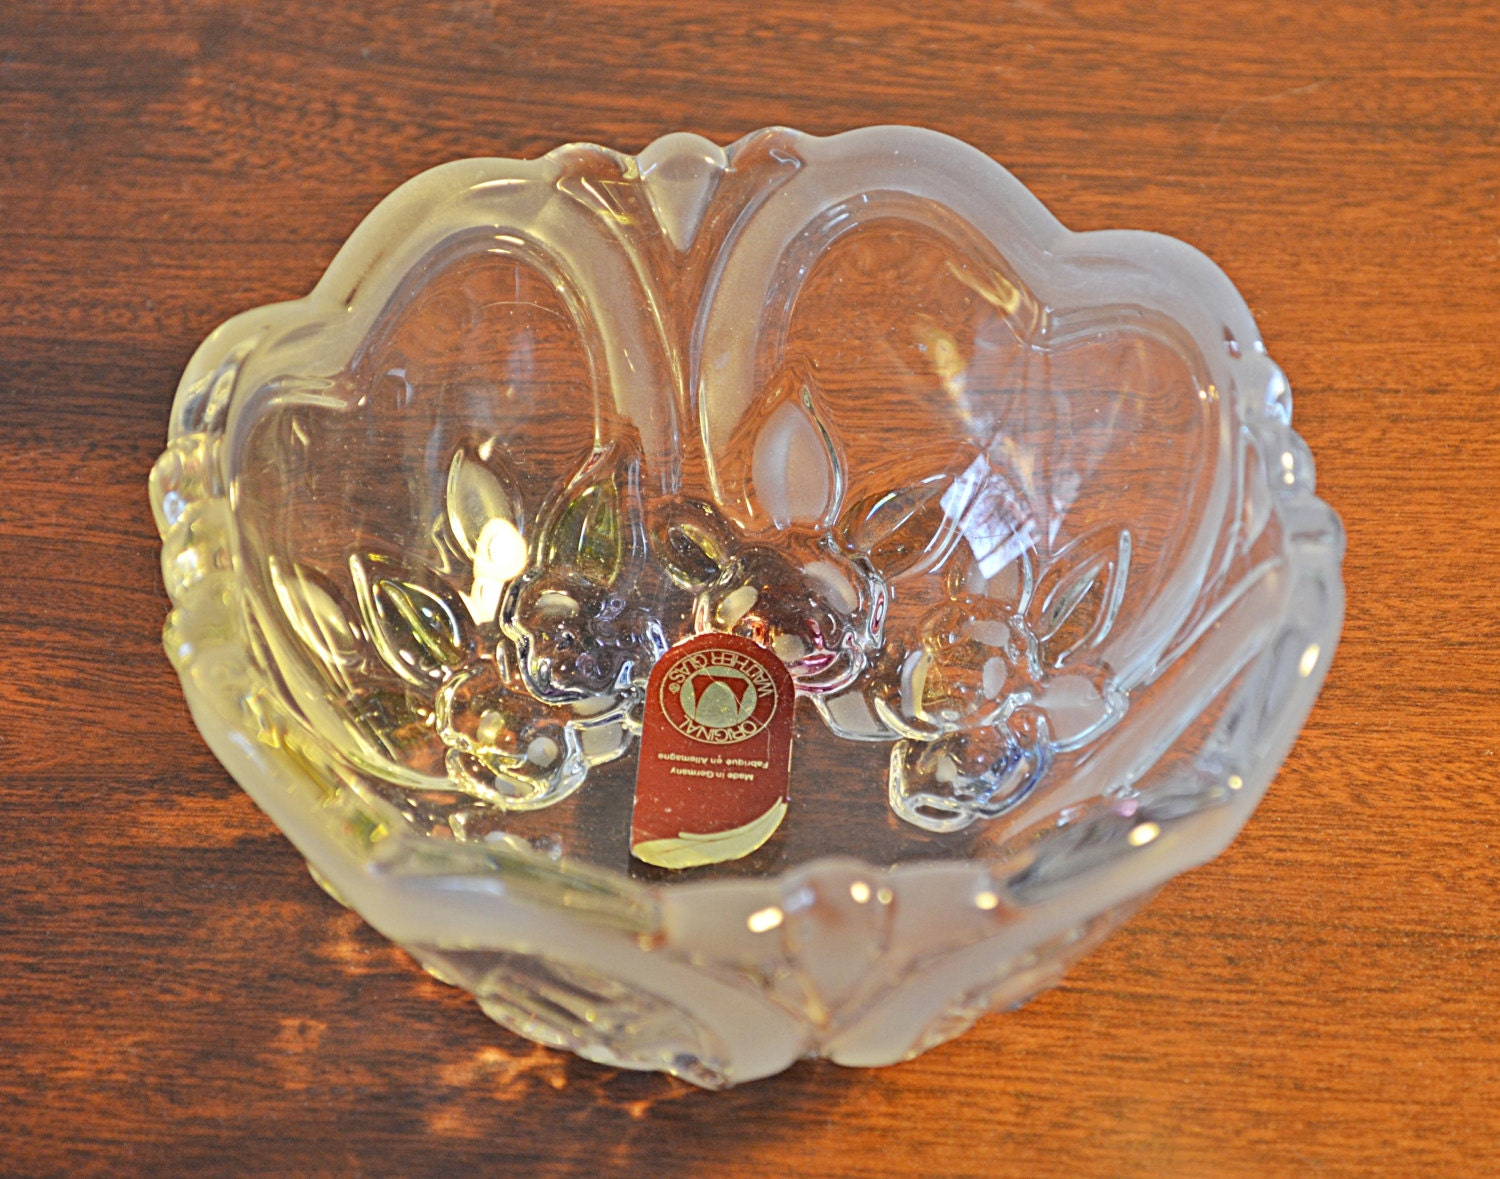 Walther glas candy dish vintage heart shaped design glass for Heart shaped jewelry dish